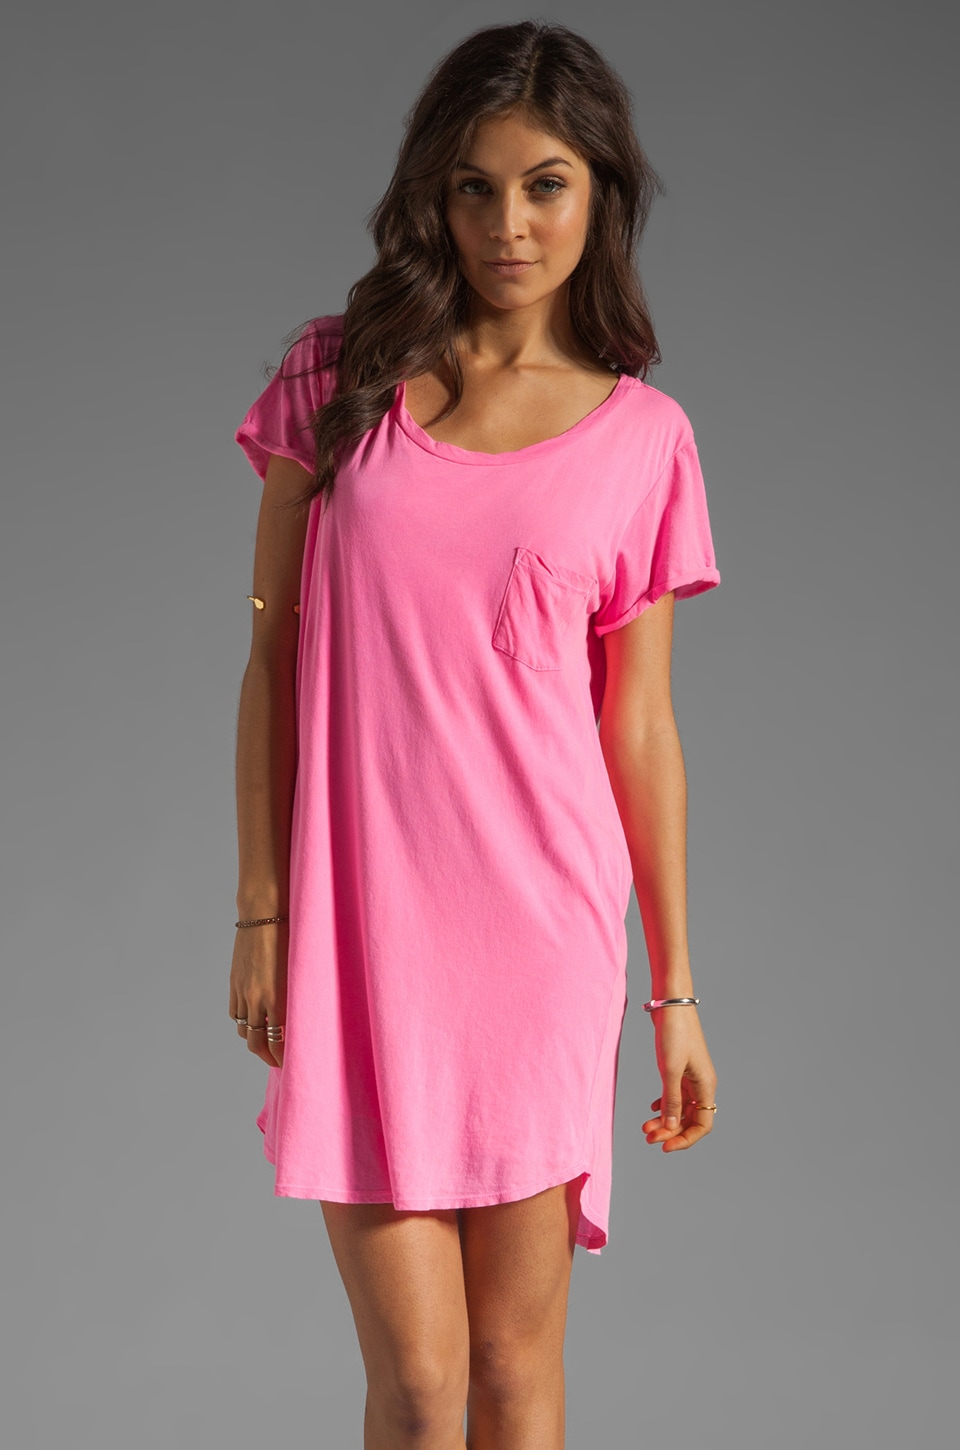 Velvet by Graham & Spencer Dasha Sheer Jersey T Shirt Dress in Verushka